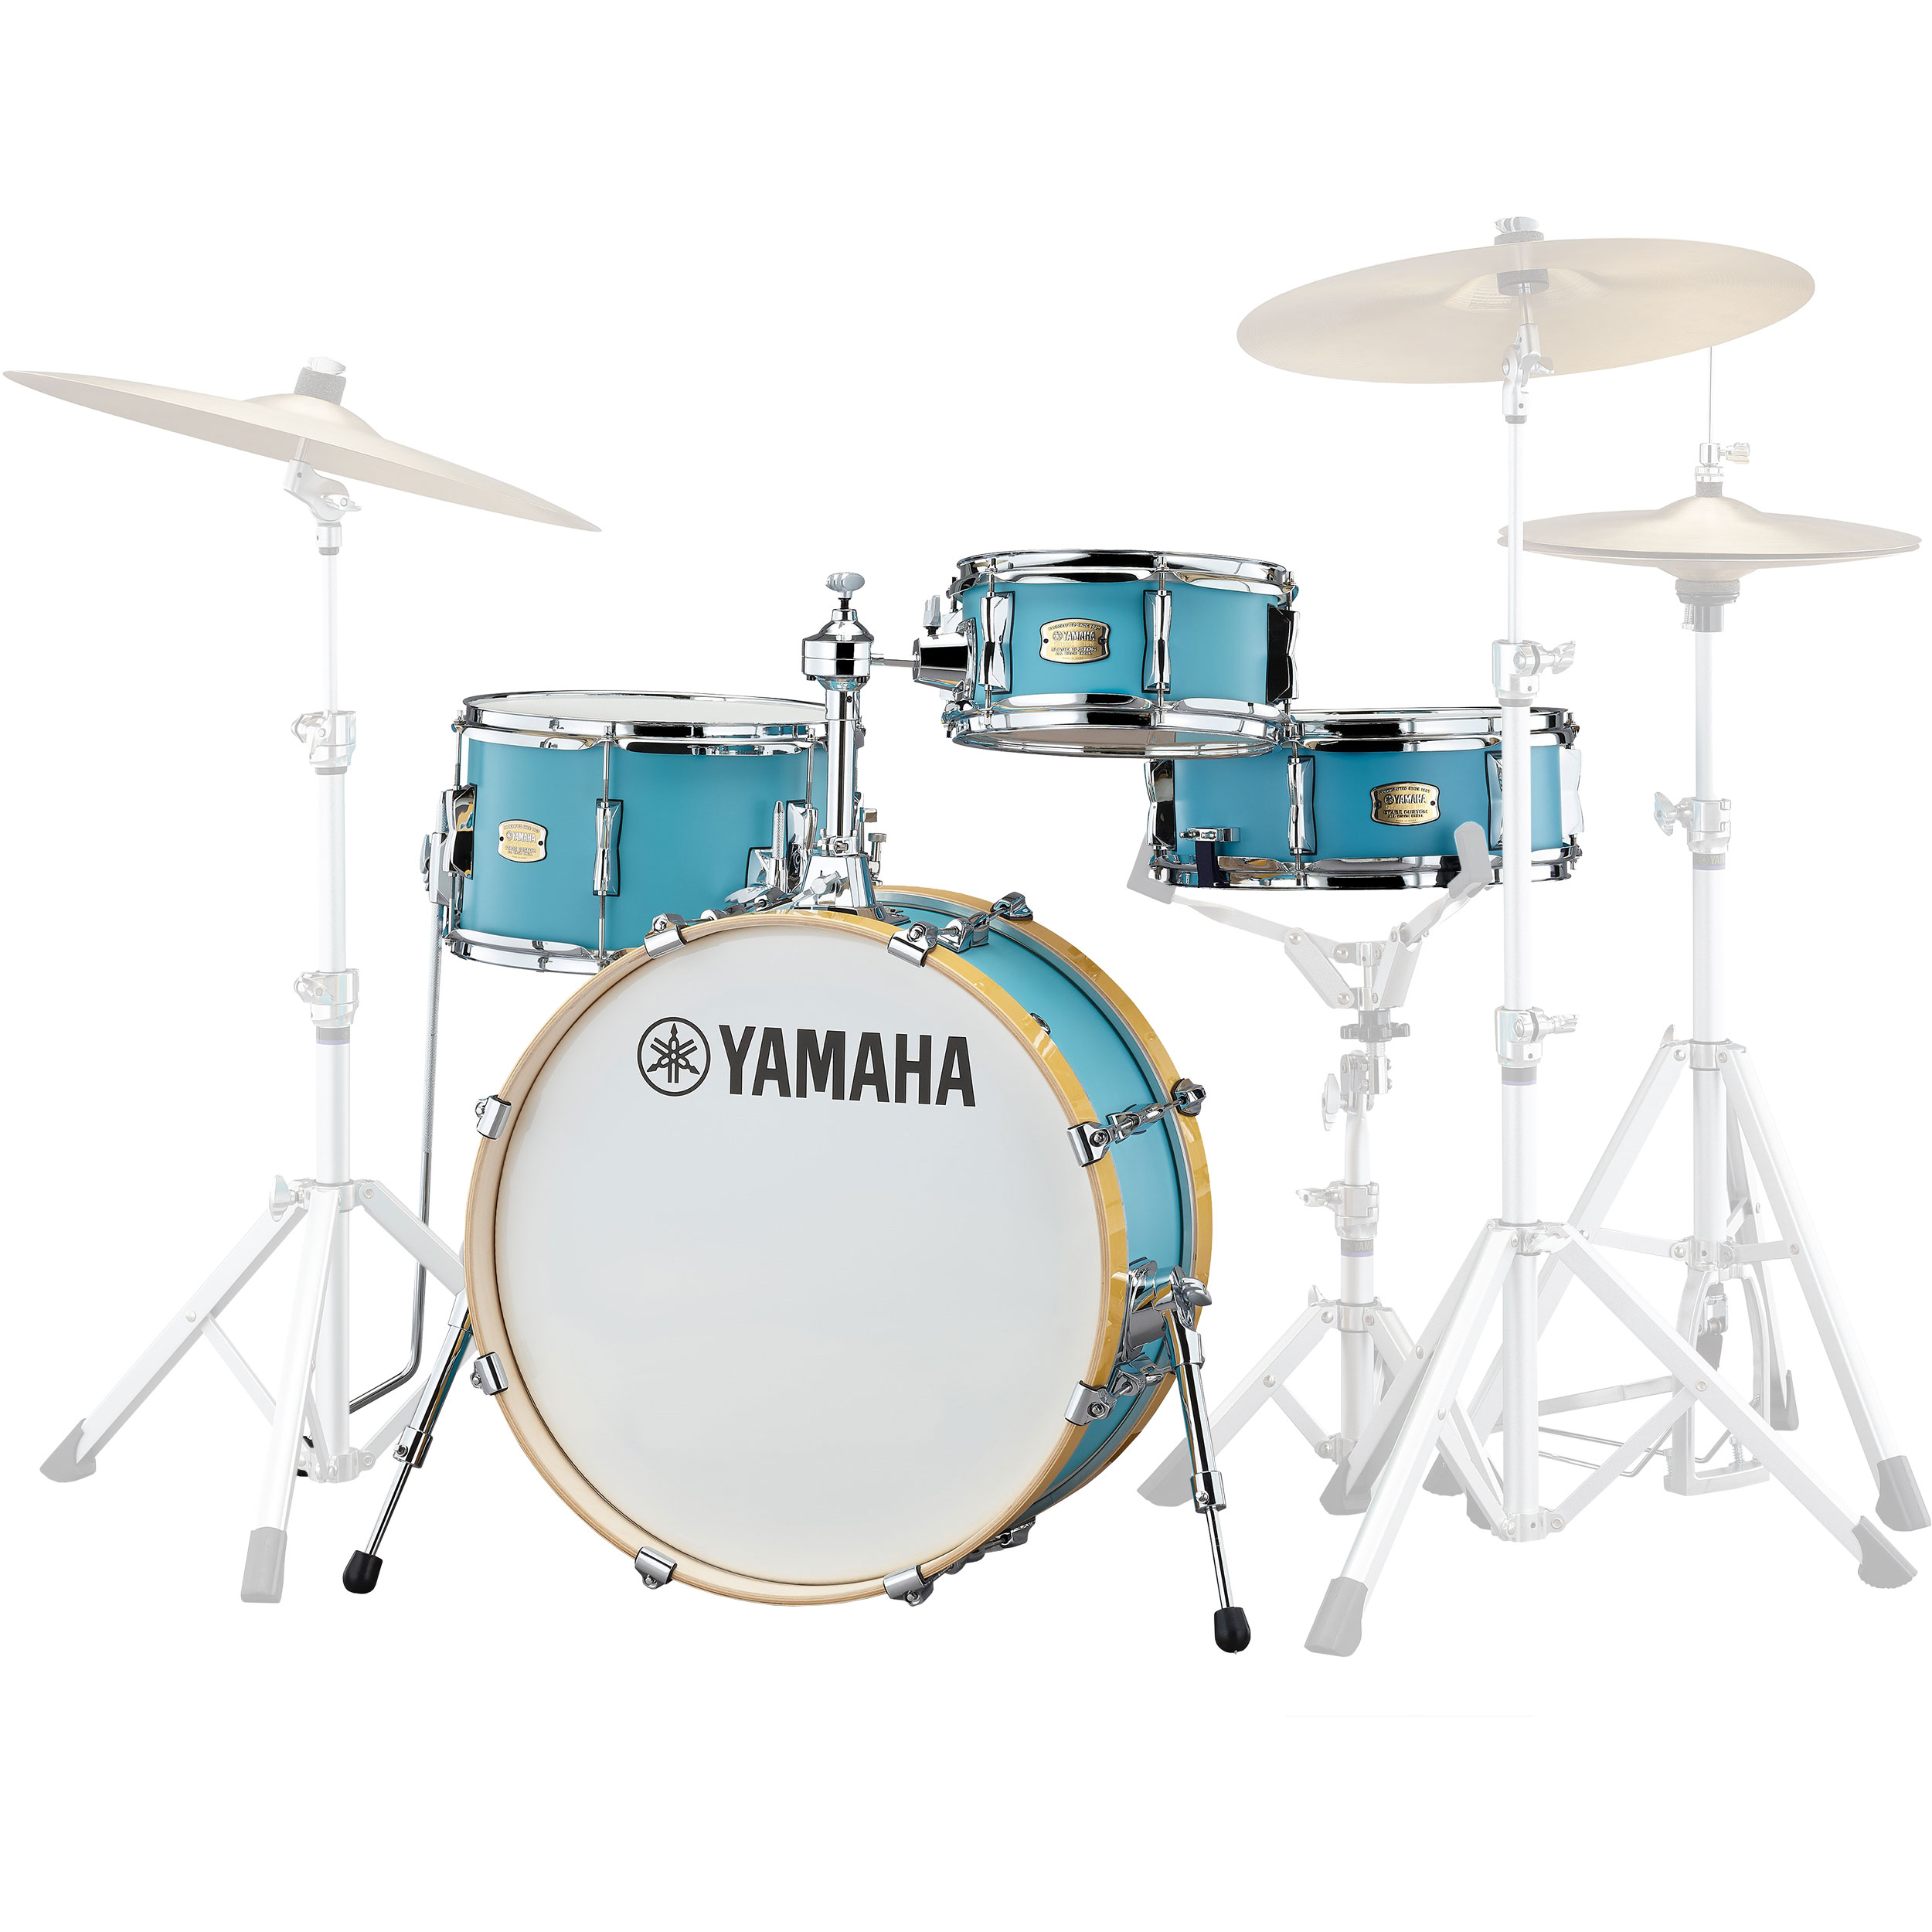 "Yamaha Stage Custom Hip 4-Piece Drum Set Shell Pack (20"" Bass, 10"" Tom, 13"" Tom/Snare, 13"" Snare)"